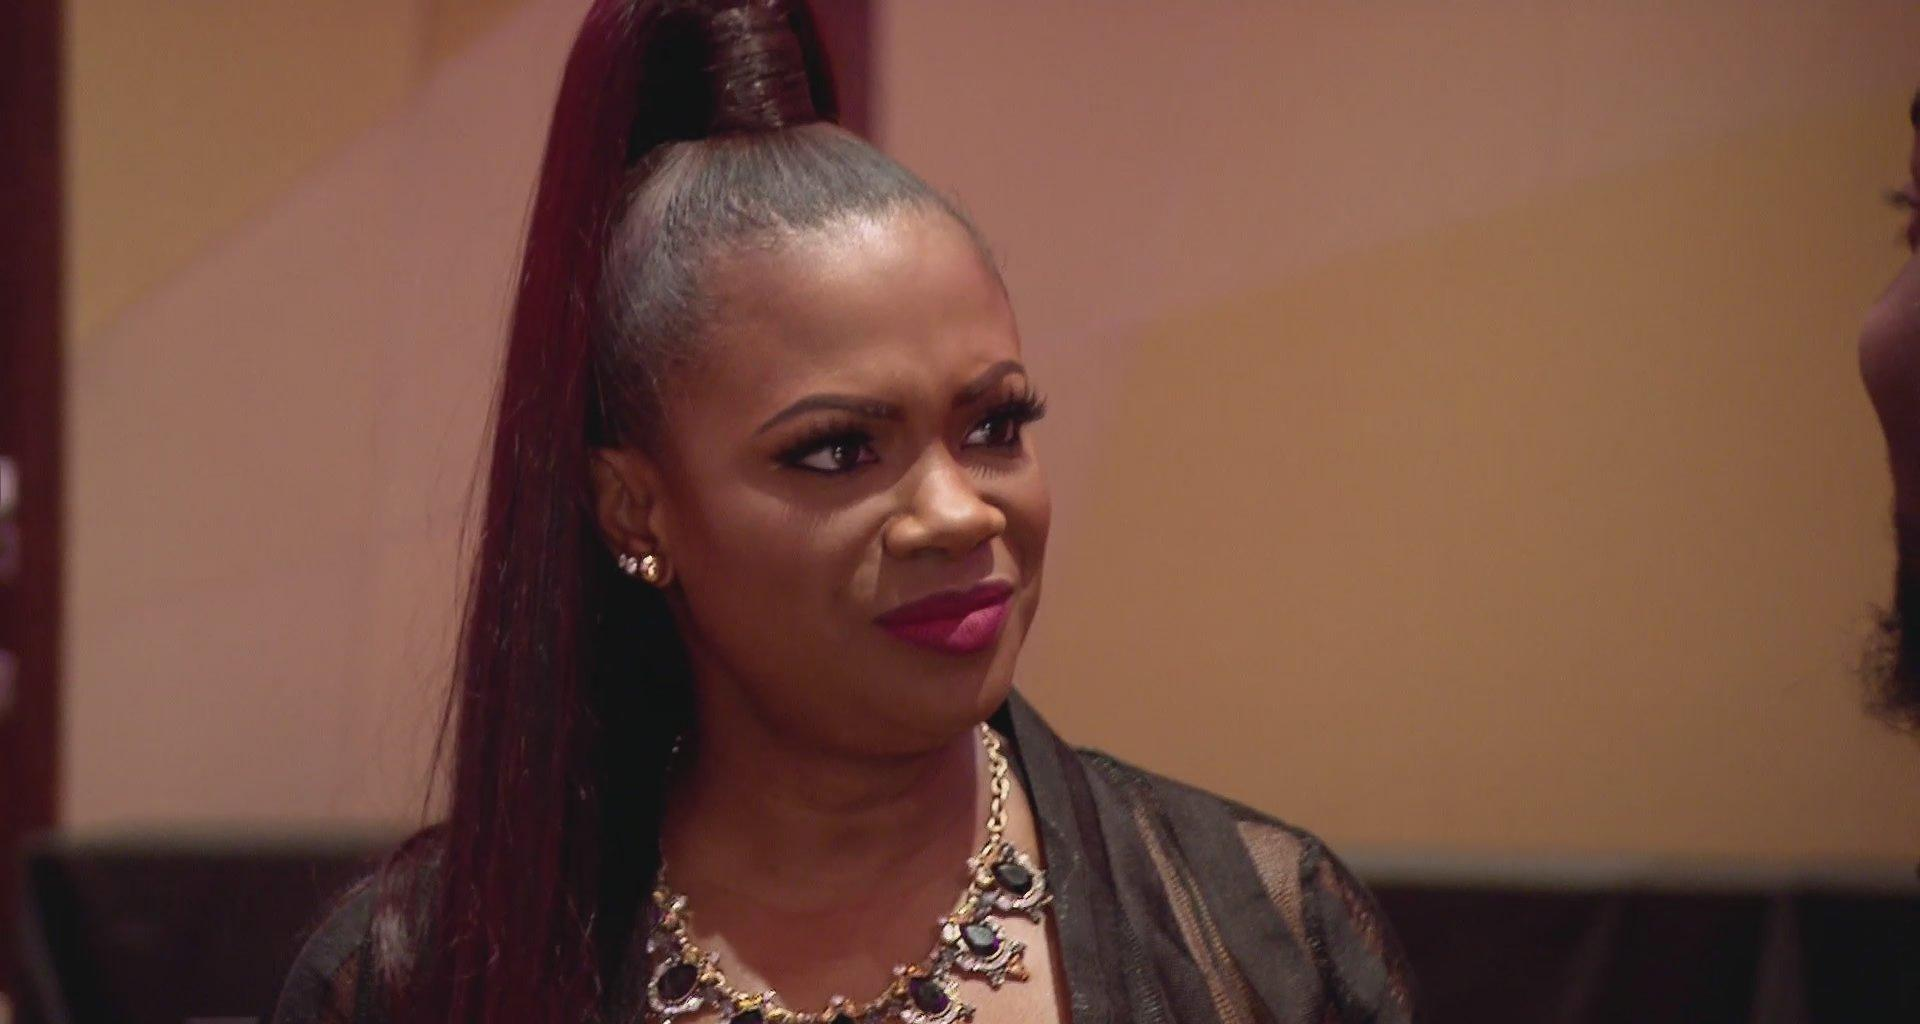 Kandi Burruss' Fans Are Devastated: The RHOA Star Revealed That Her Surrogate Was Pregnant With Twins, But She Lost One Of Them